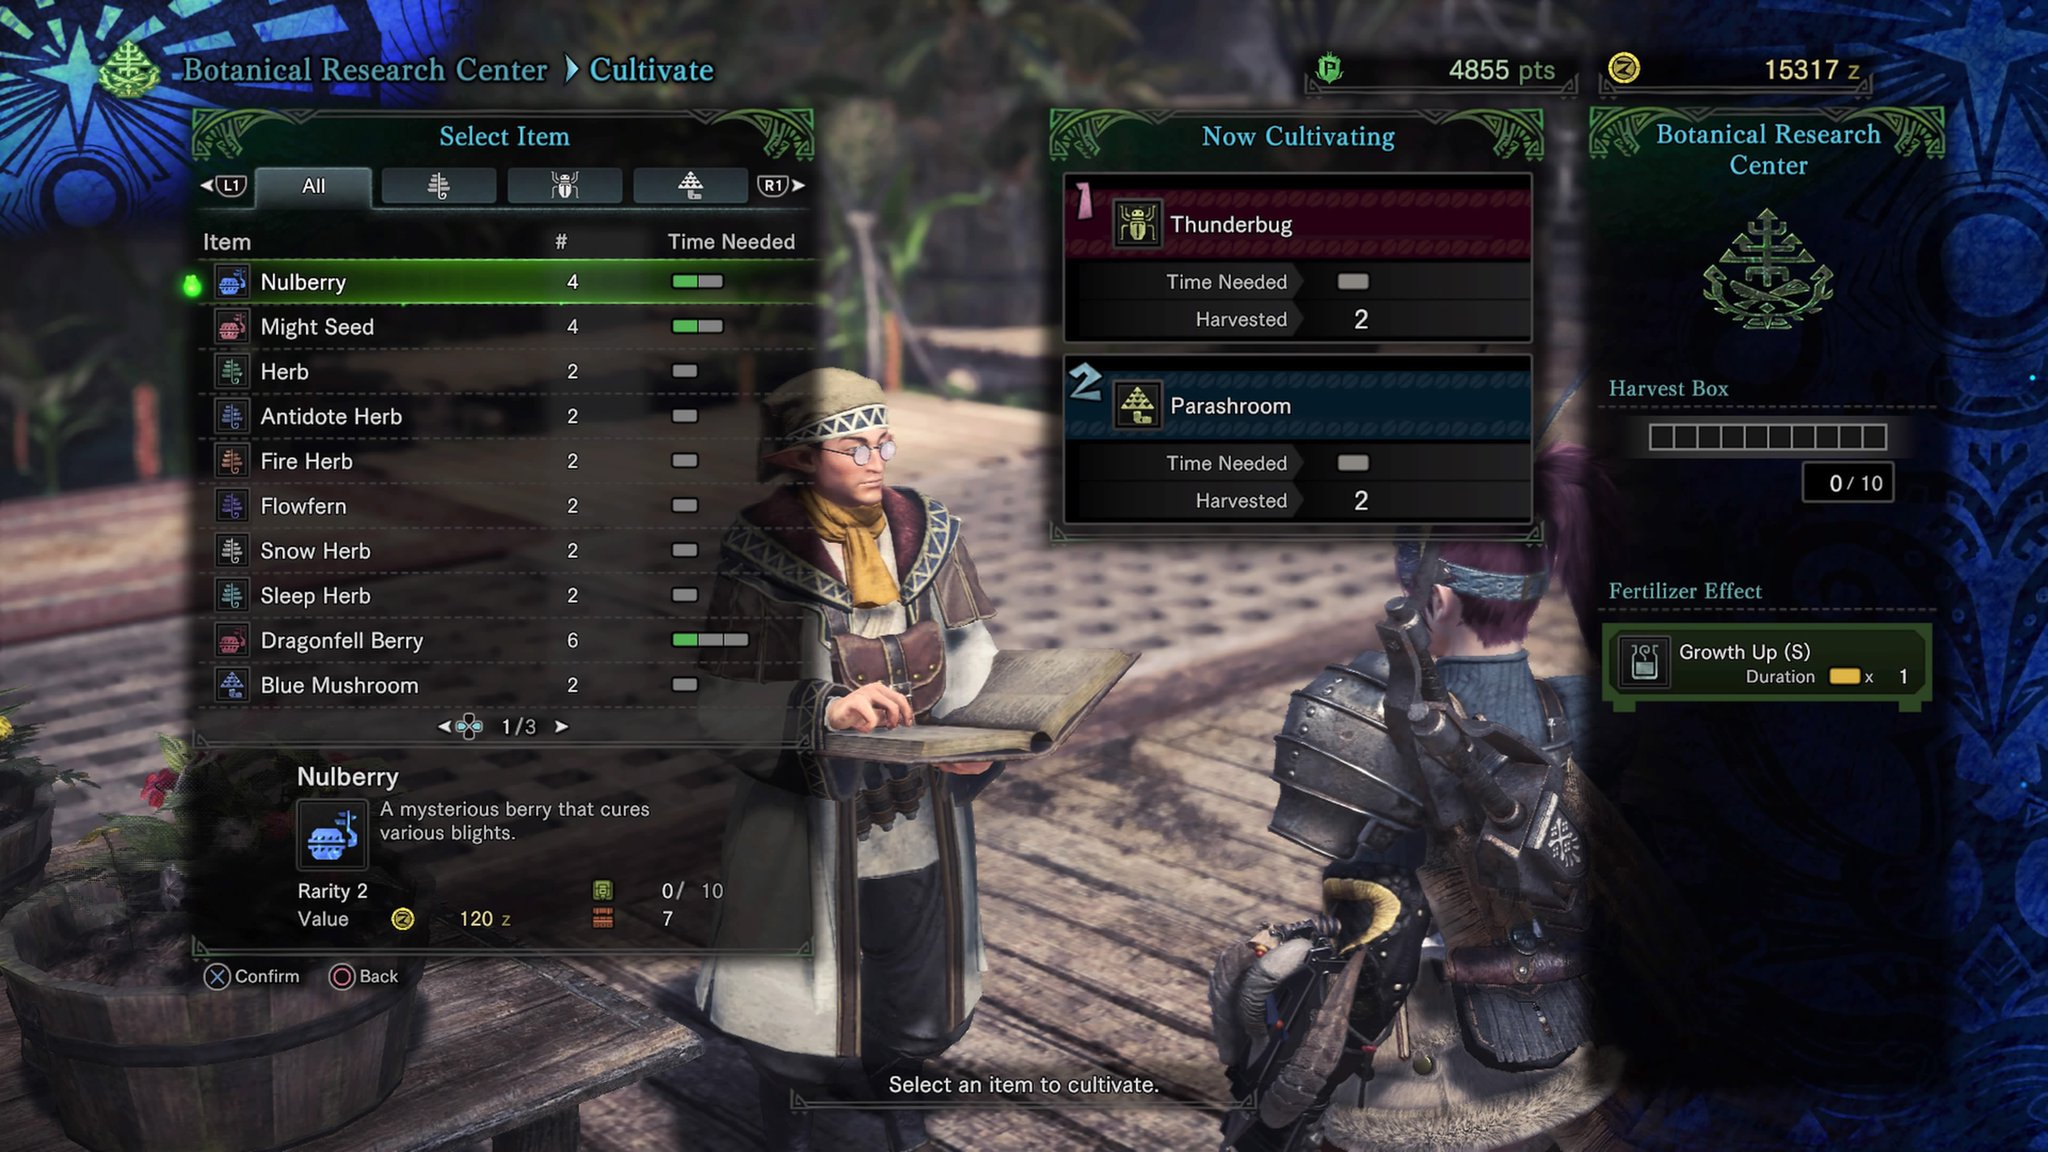 Monster Hunter World Botanical Research Center - How to Use